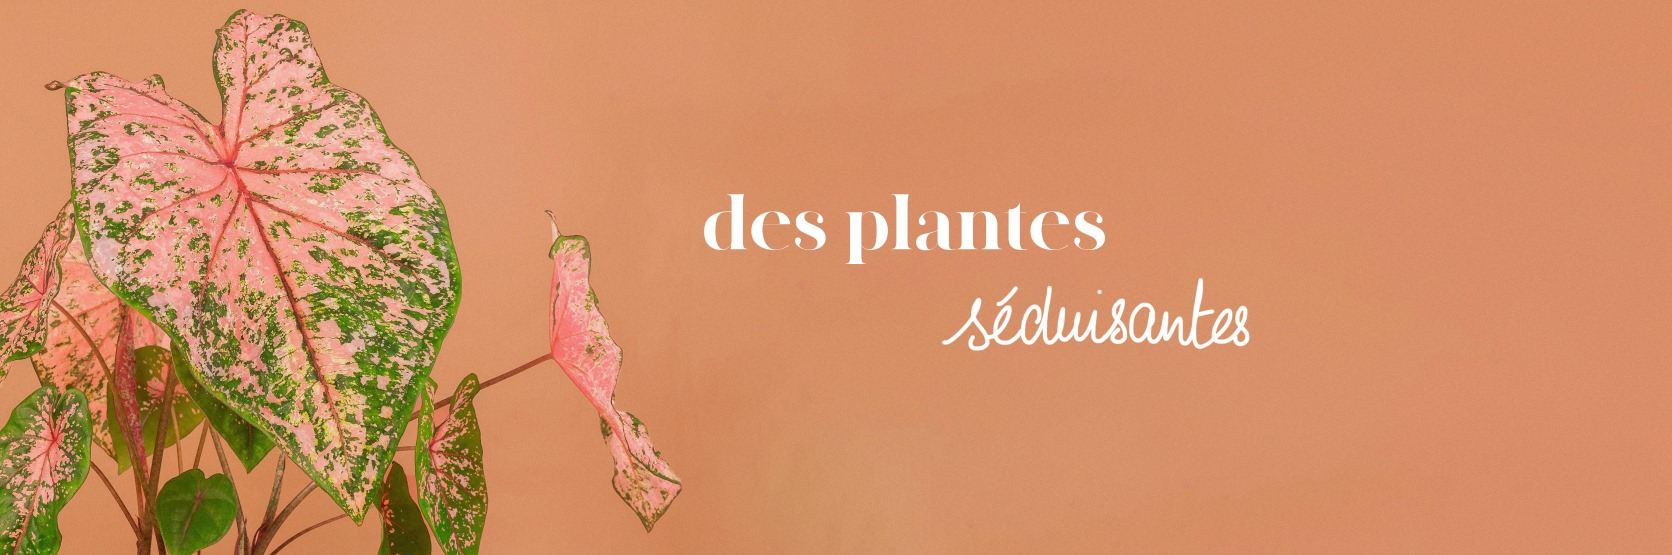 plant ands stories